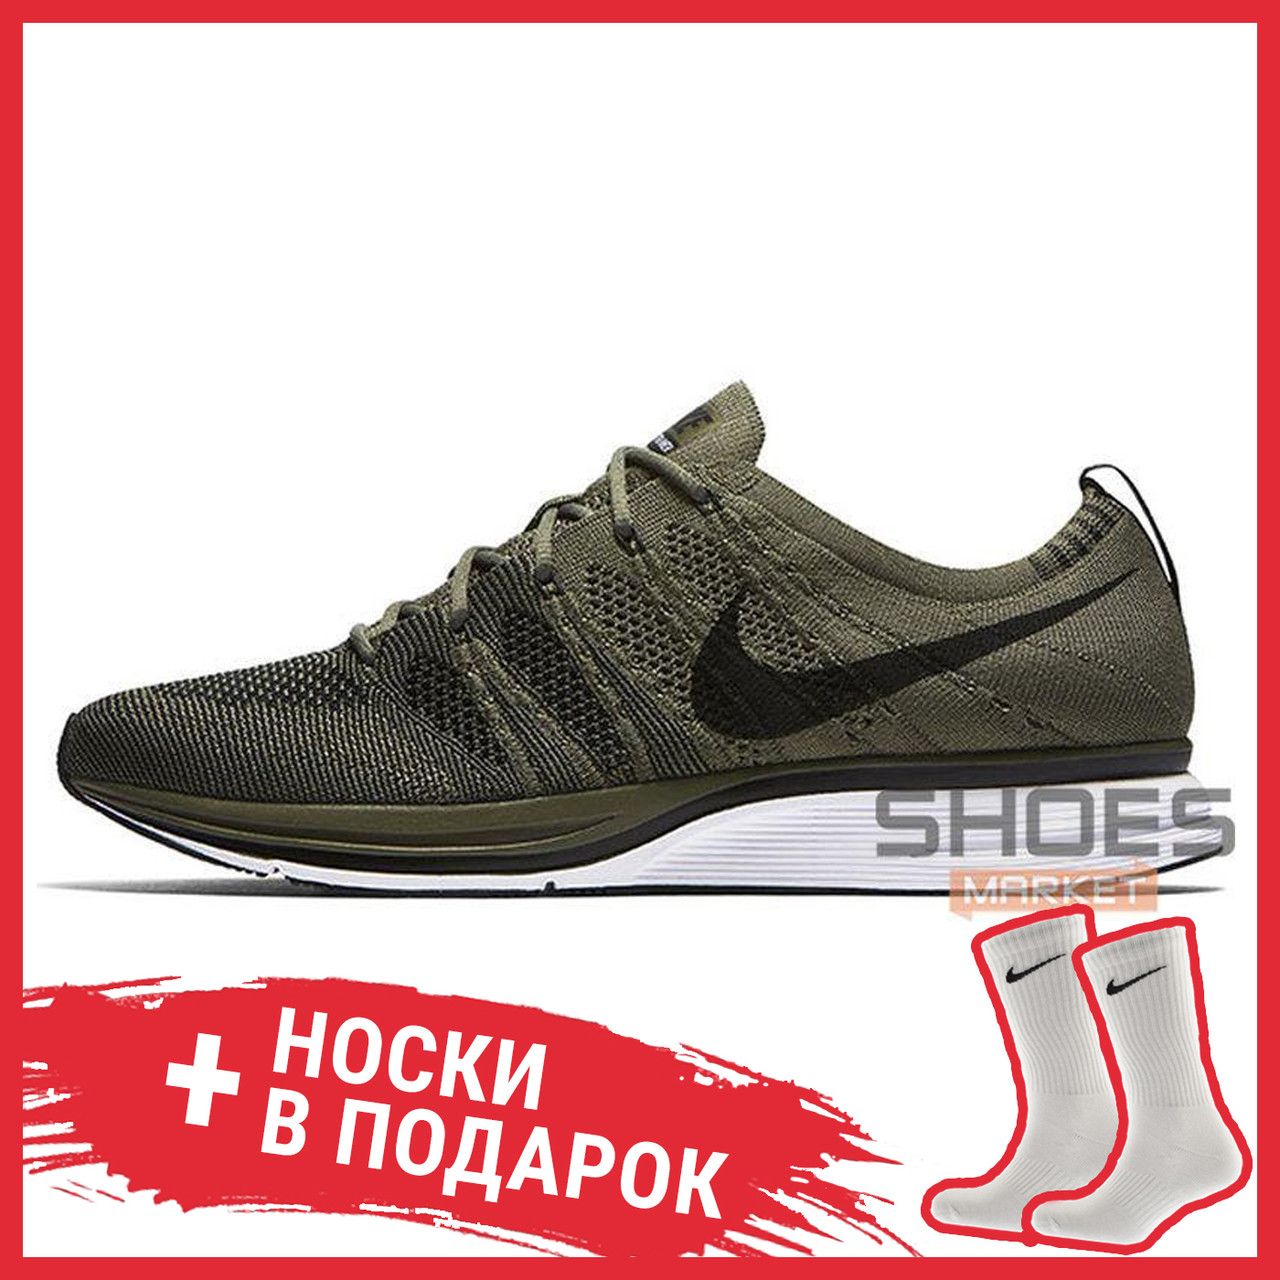 Мужские кроссовки Nike Flyknit Trainer Medium Olive/Black/White AH8396-200, Найк Флайнит